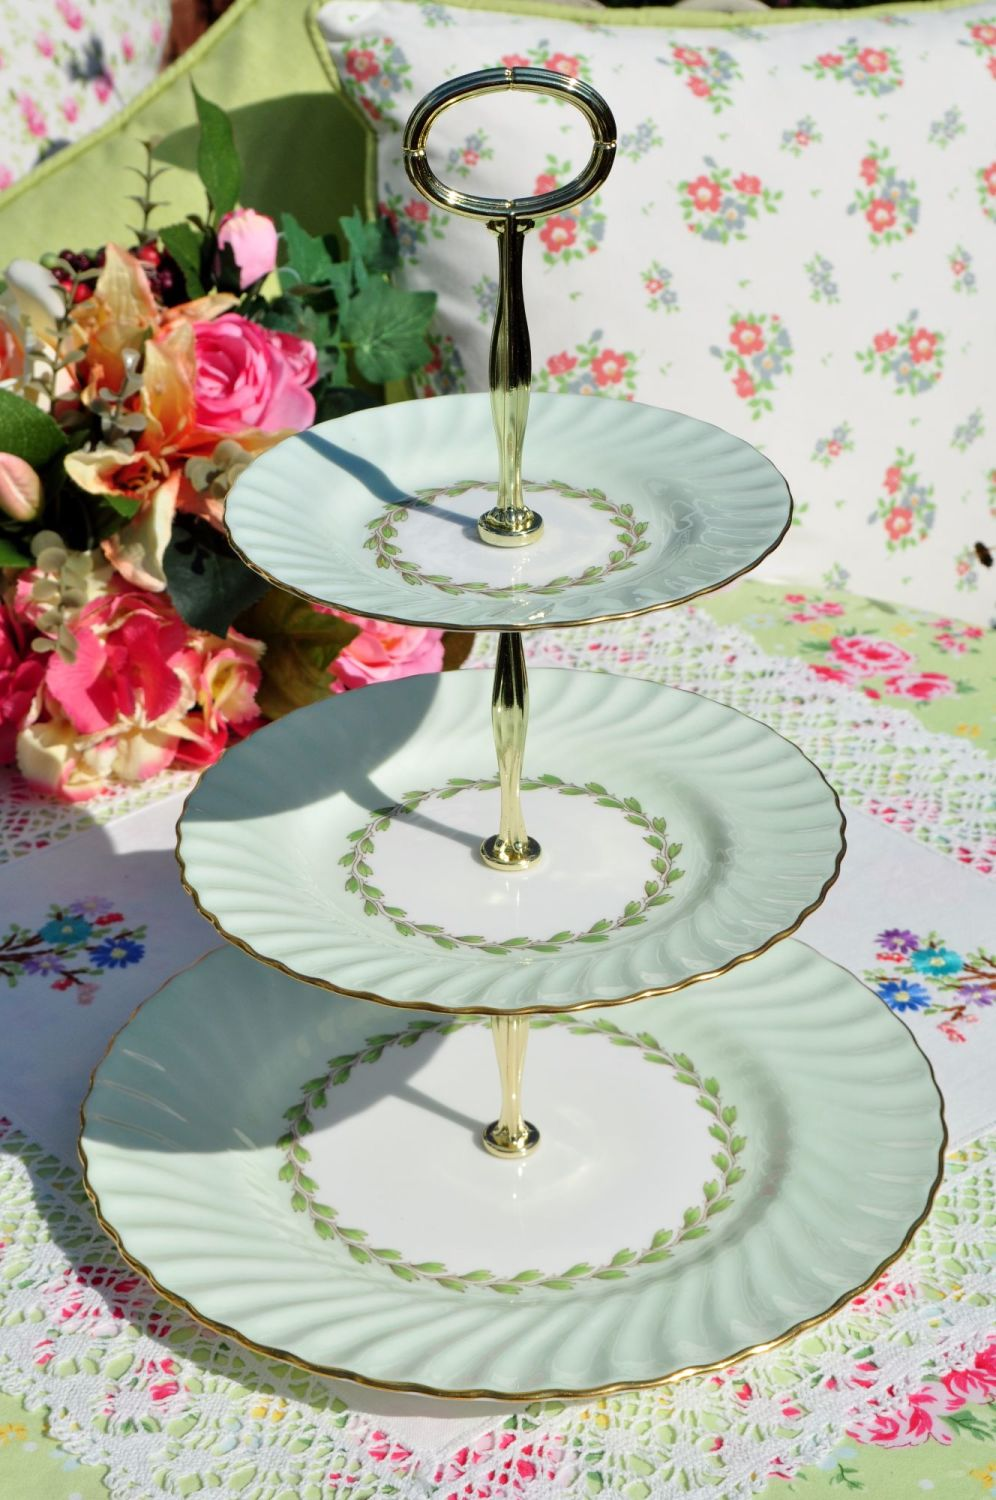 Minton Cheviot Pattern 3 Tier Cake Stand c.1960s